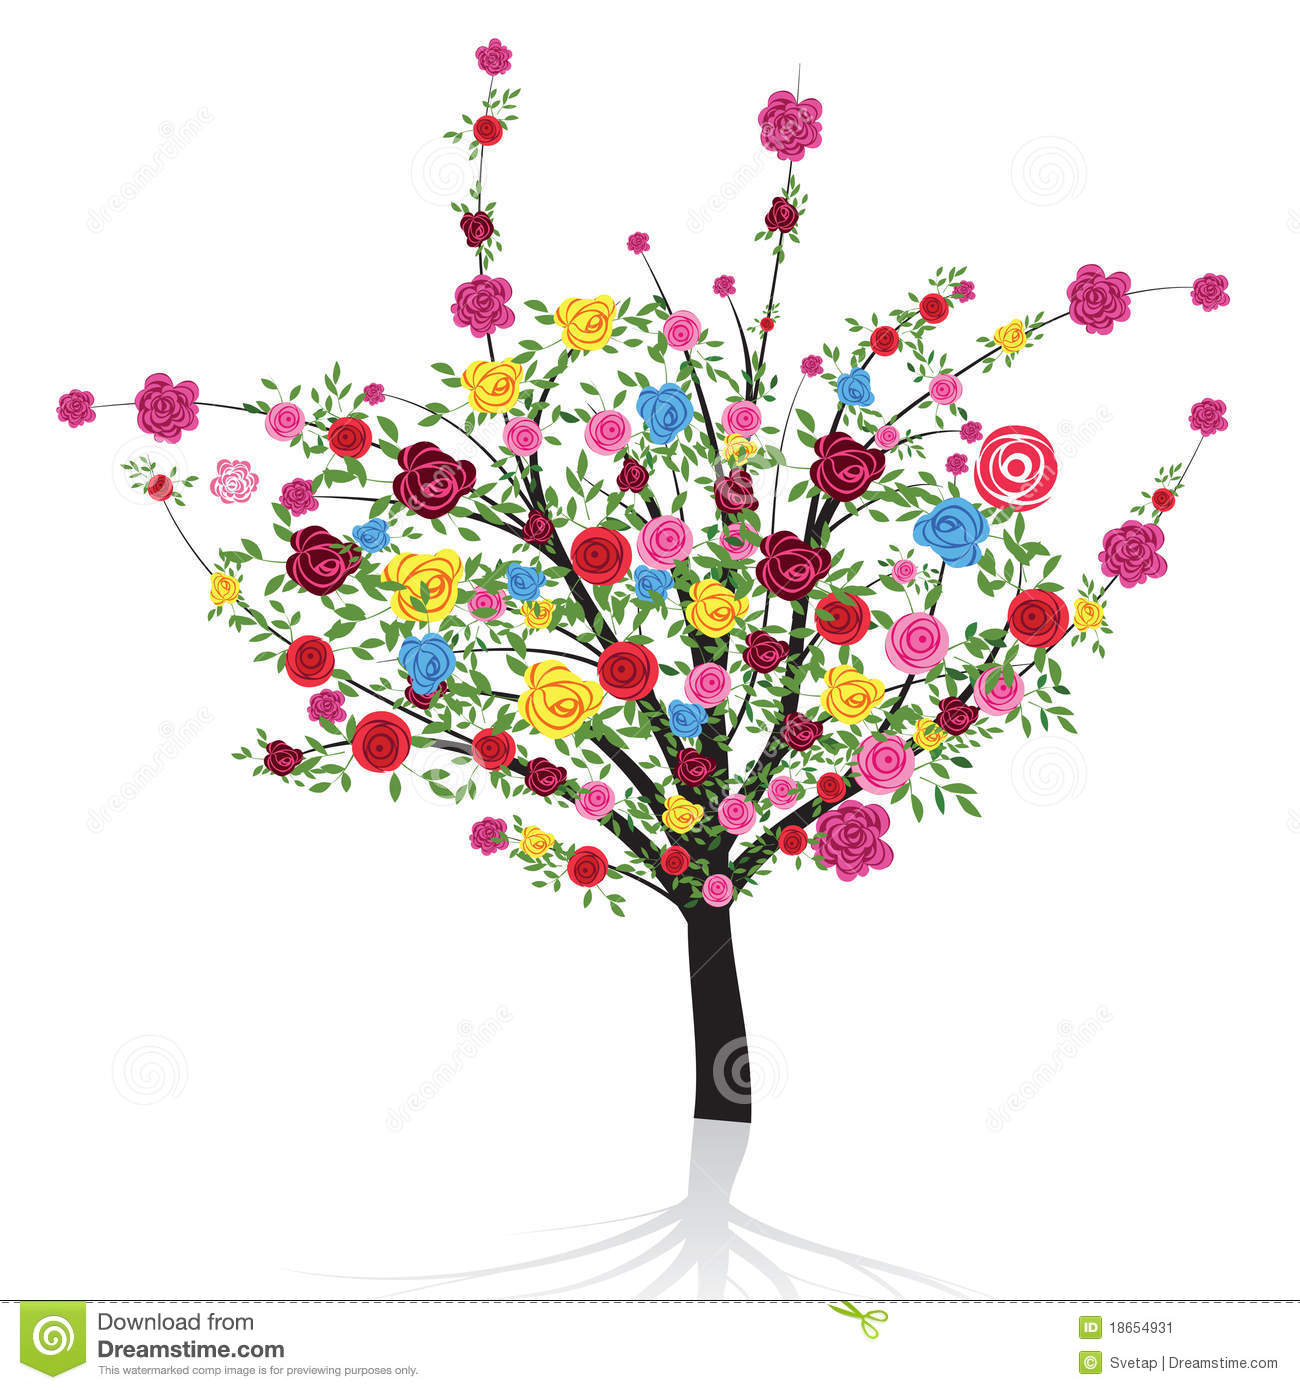 Abstract colorful tree with flower rose. illustration for your design.